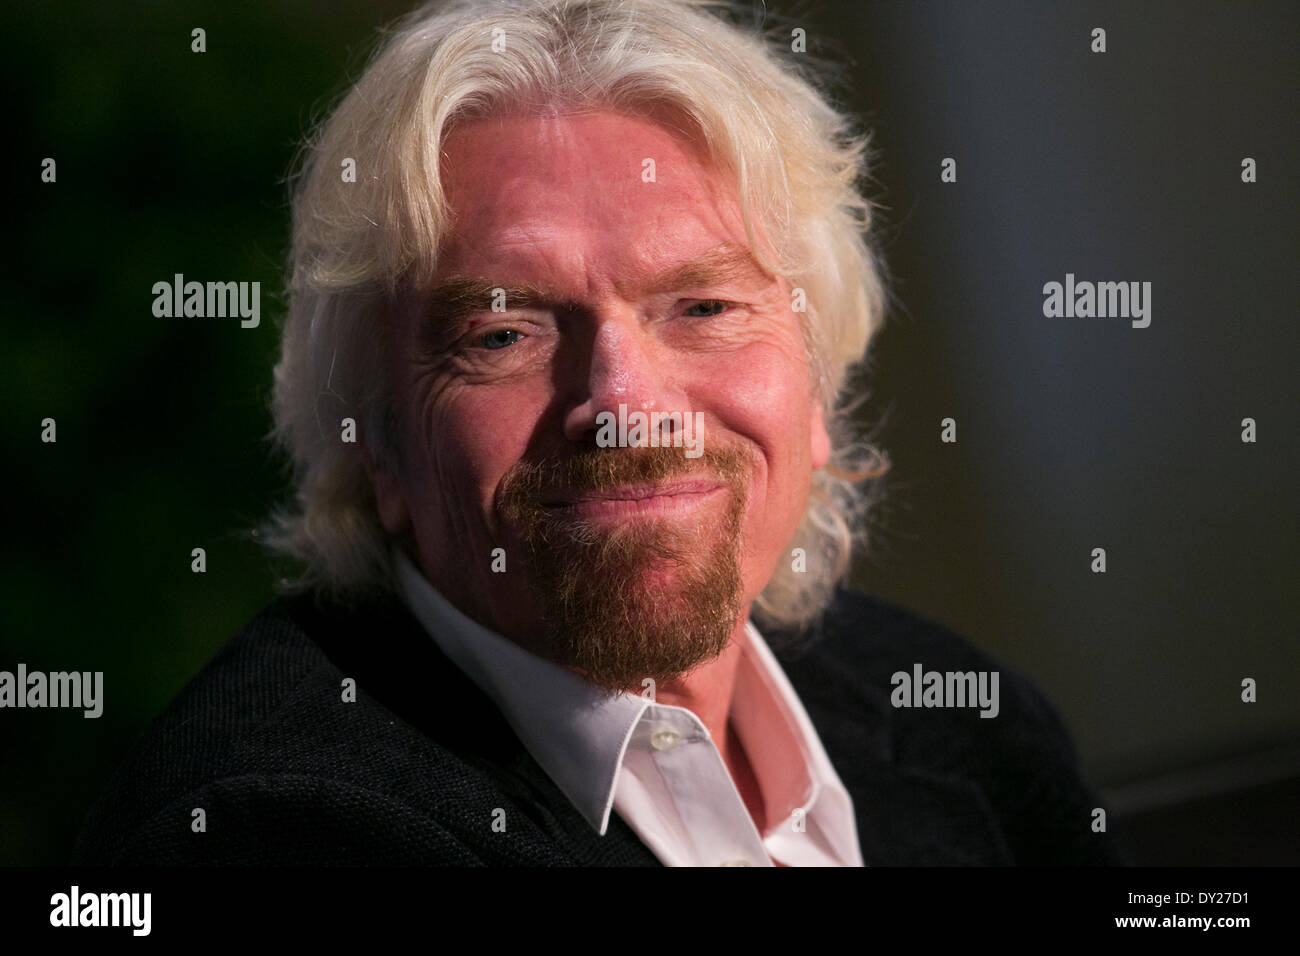 Washington DC, USA . 03rd Apr, 2014. Sir Richard Branson, Founder, Virgin Group, speaks at the U.S. Chamber Of Commerce Foundation 13th Annual Aviation Summit  in Washington, D.C., on April 3, 2014. Credit:  Kristoffer Tripplaar/Alamy Live News - Stock Image